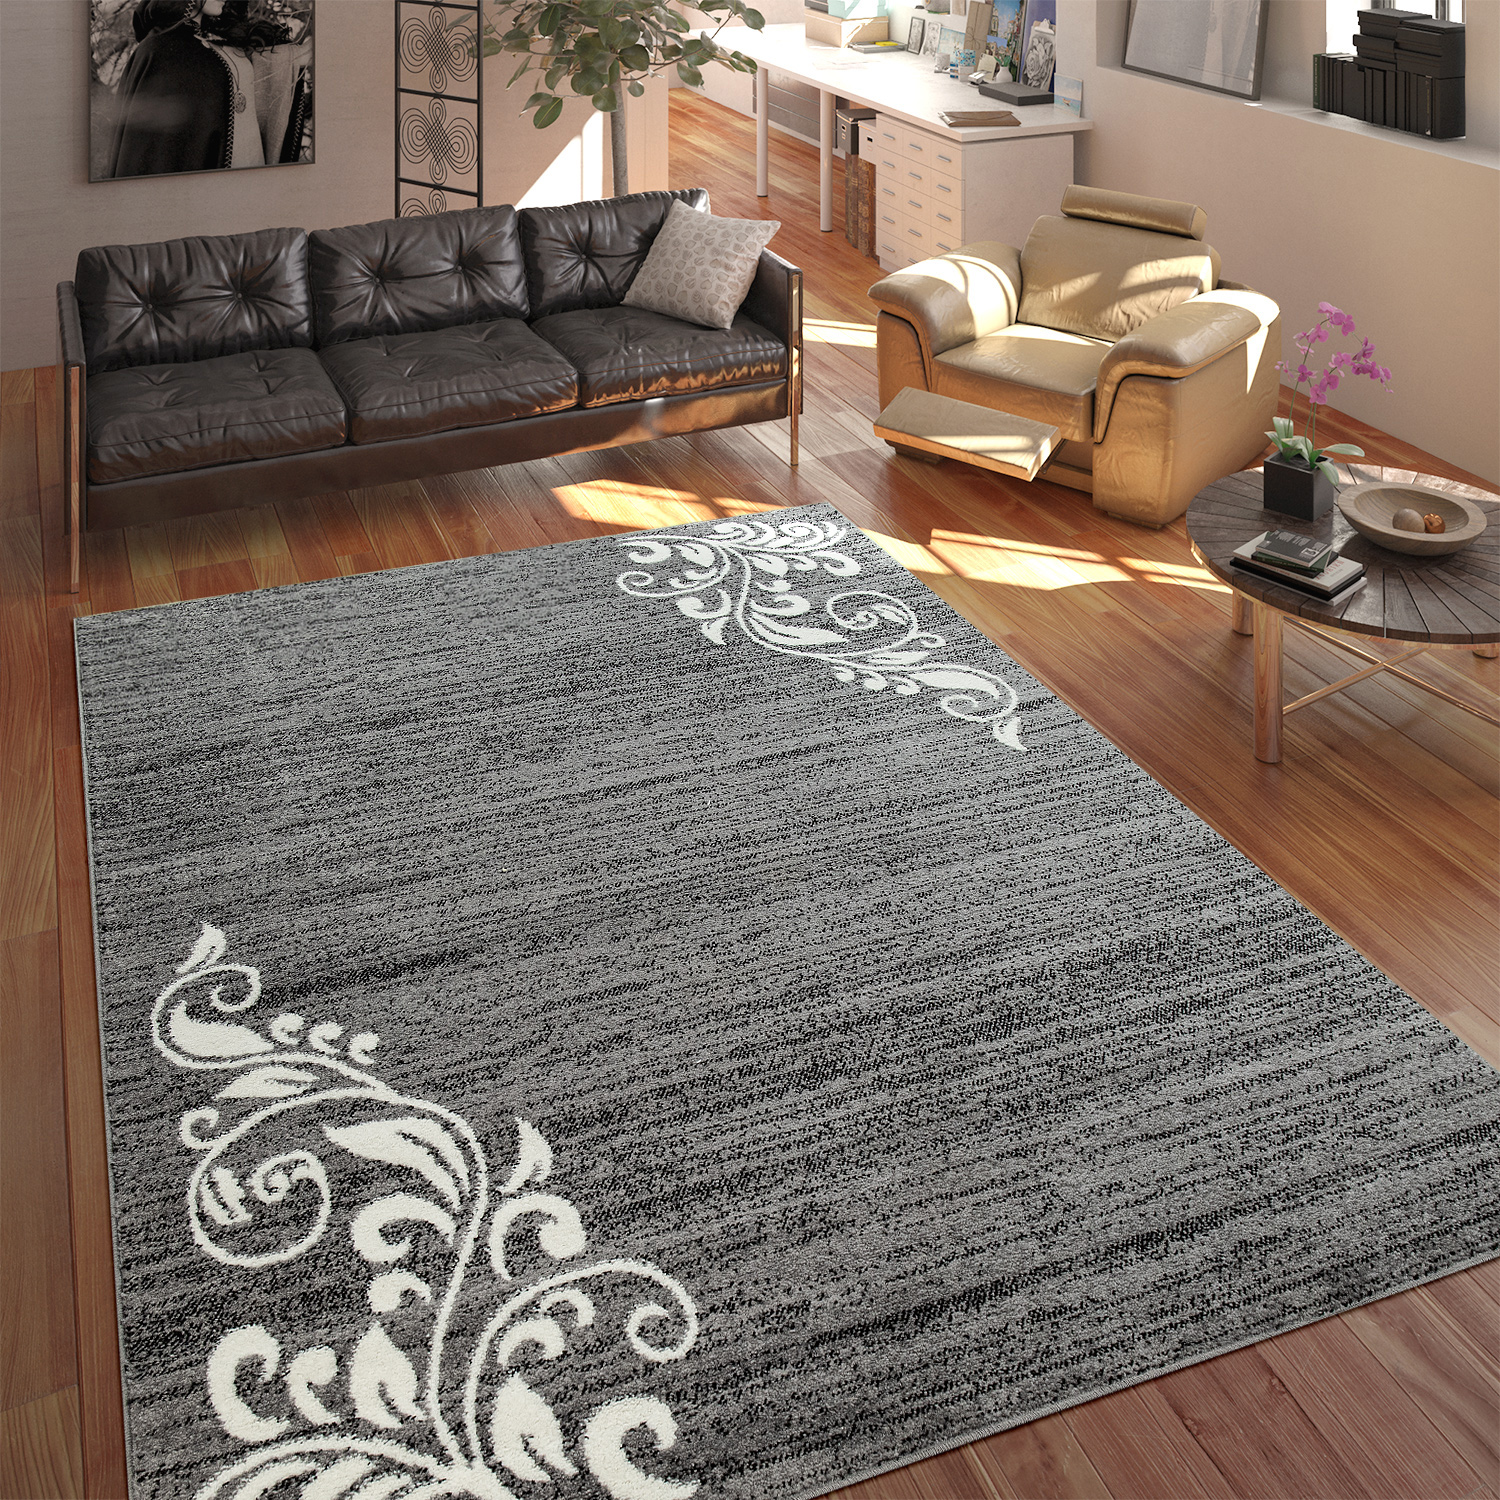 Tapis De Salon Tapis Salon Poils Ras Ornement Gris